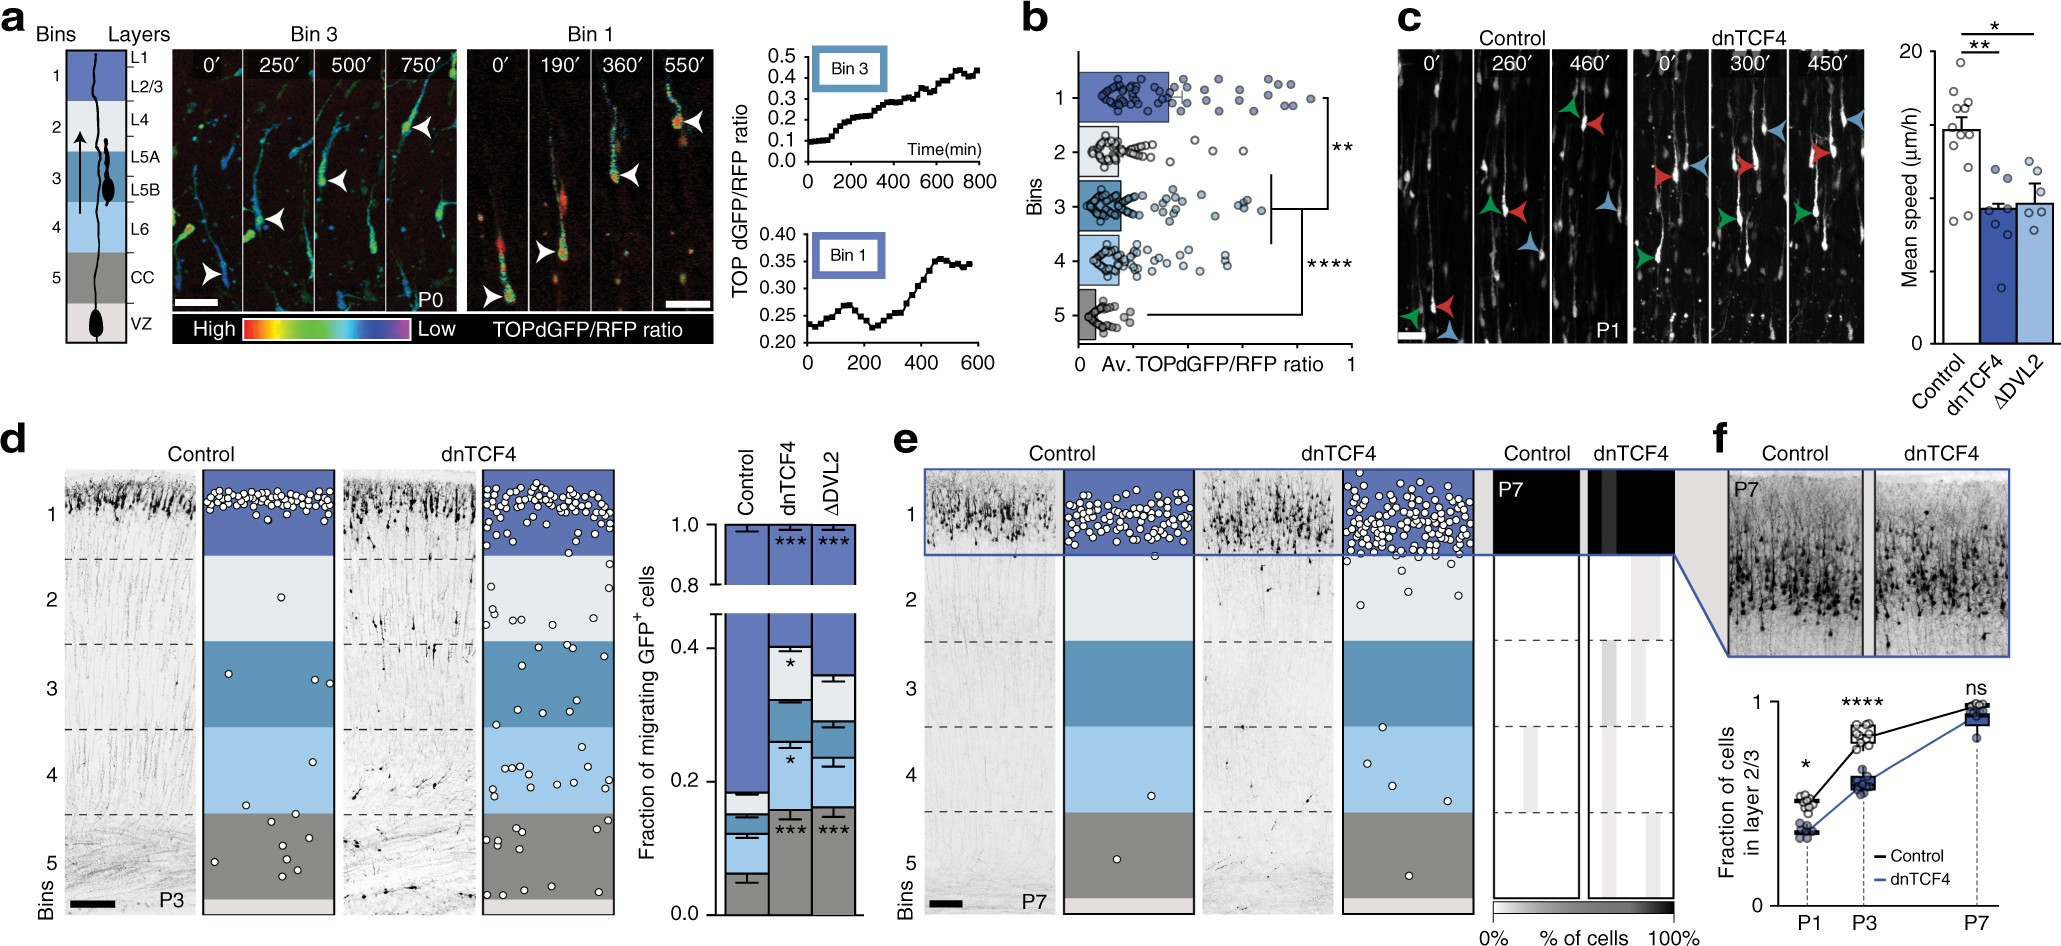 Perturbed Wnt Signaling Leads To Neuronal Migration Delay Altered Cable Tester Circuit Moreover Diagram Of A Schematic On Interhemispheric Connections And Impaired Social Behavior Nature Communications